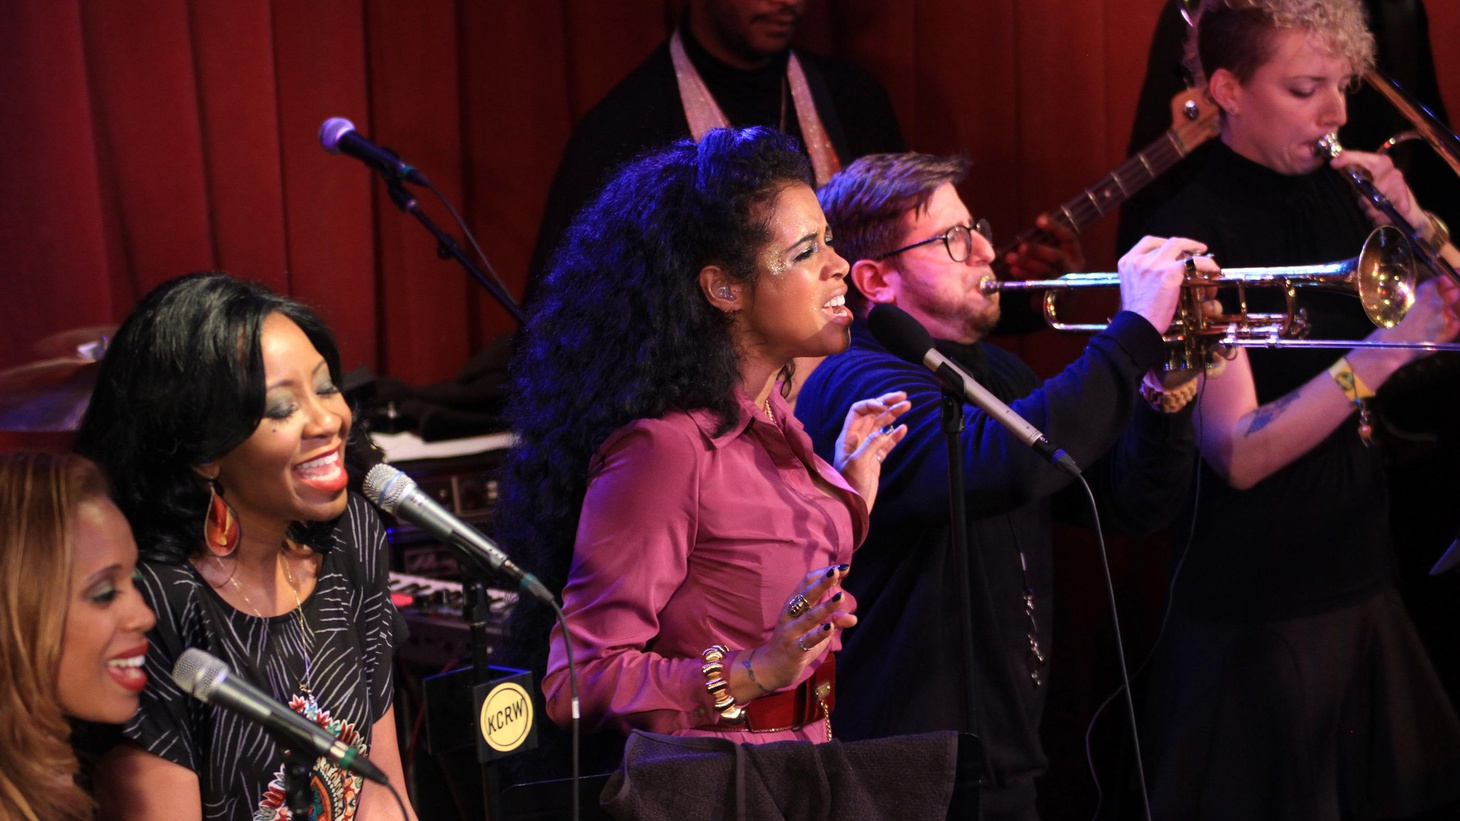 Kelis cooked up a spicy funky mix when she performed in the intimate setting of Apogee Studio recently.